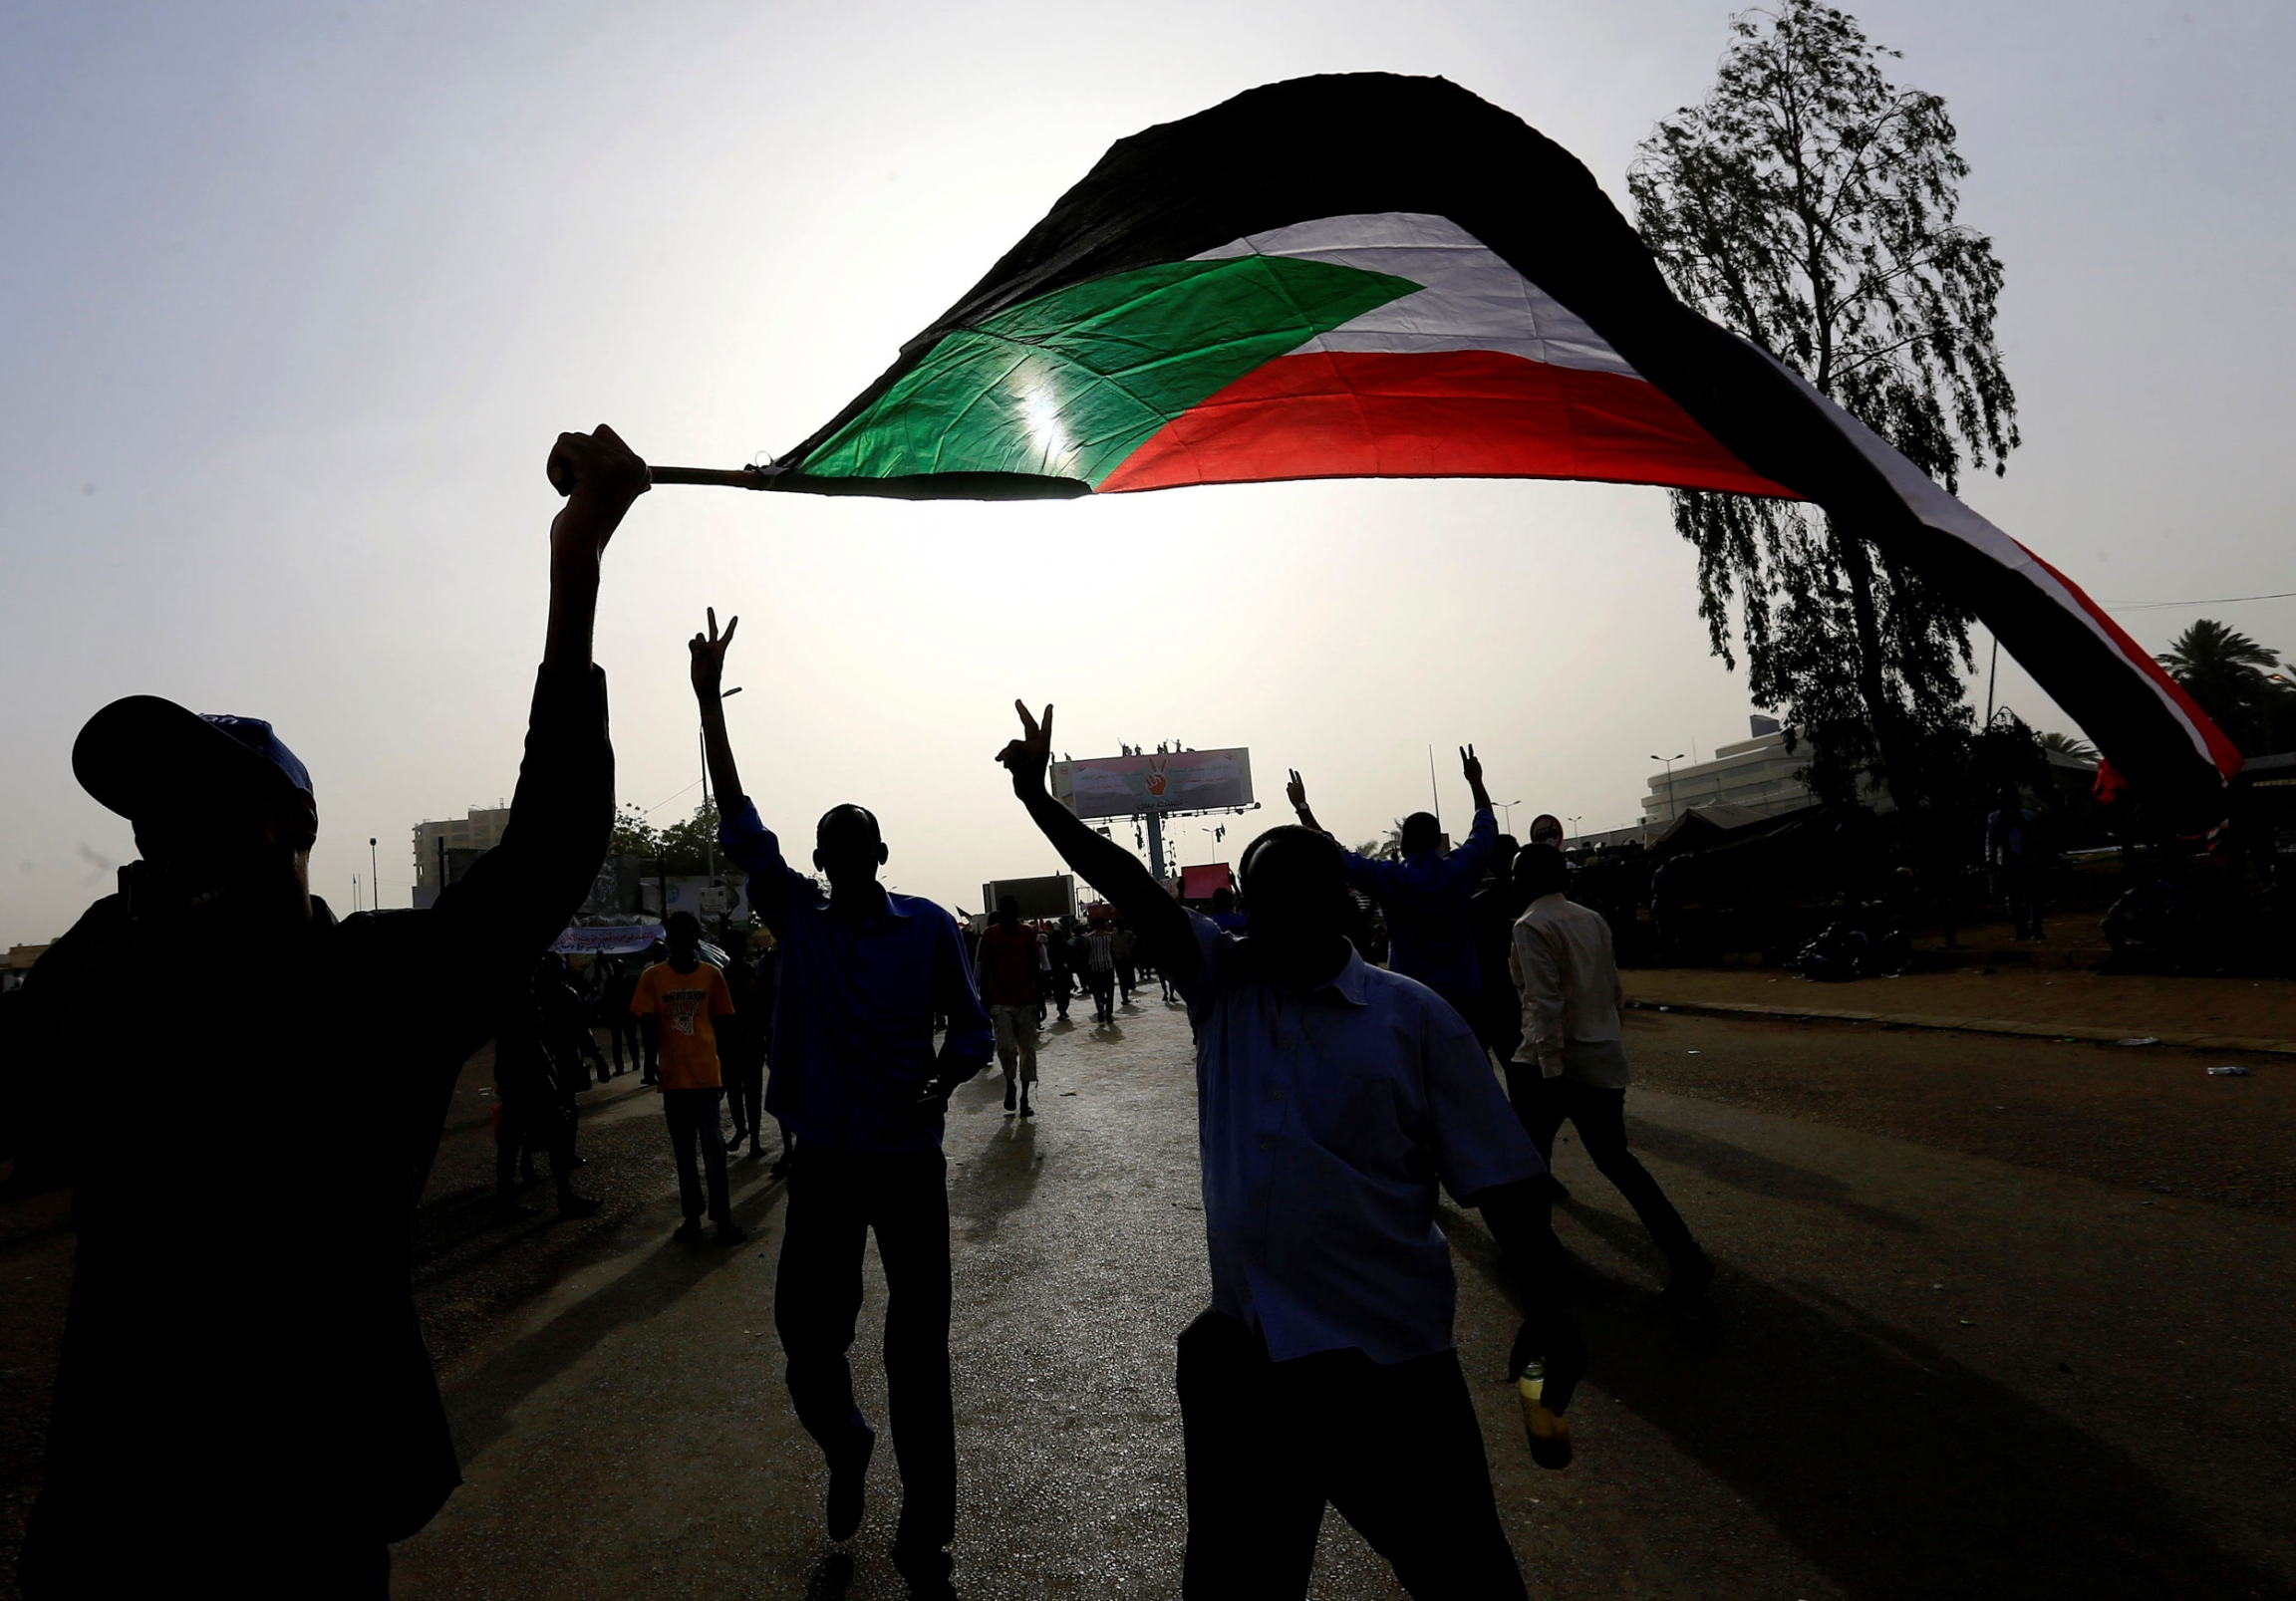 People hold their hands in the air and wave a large Sudanese flag. They are backlit by the sun.